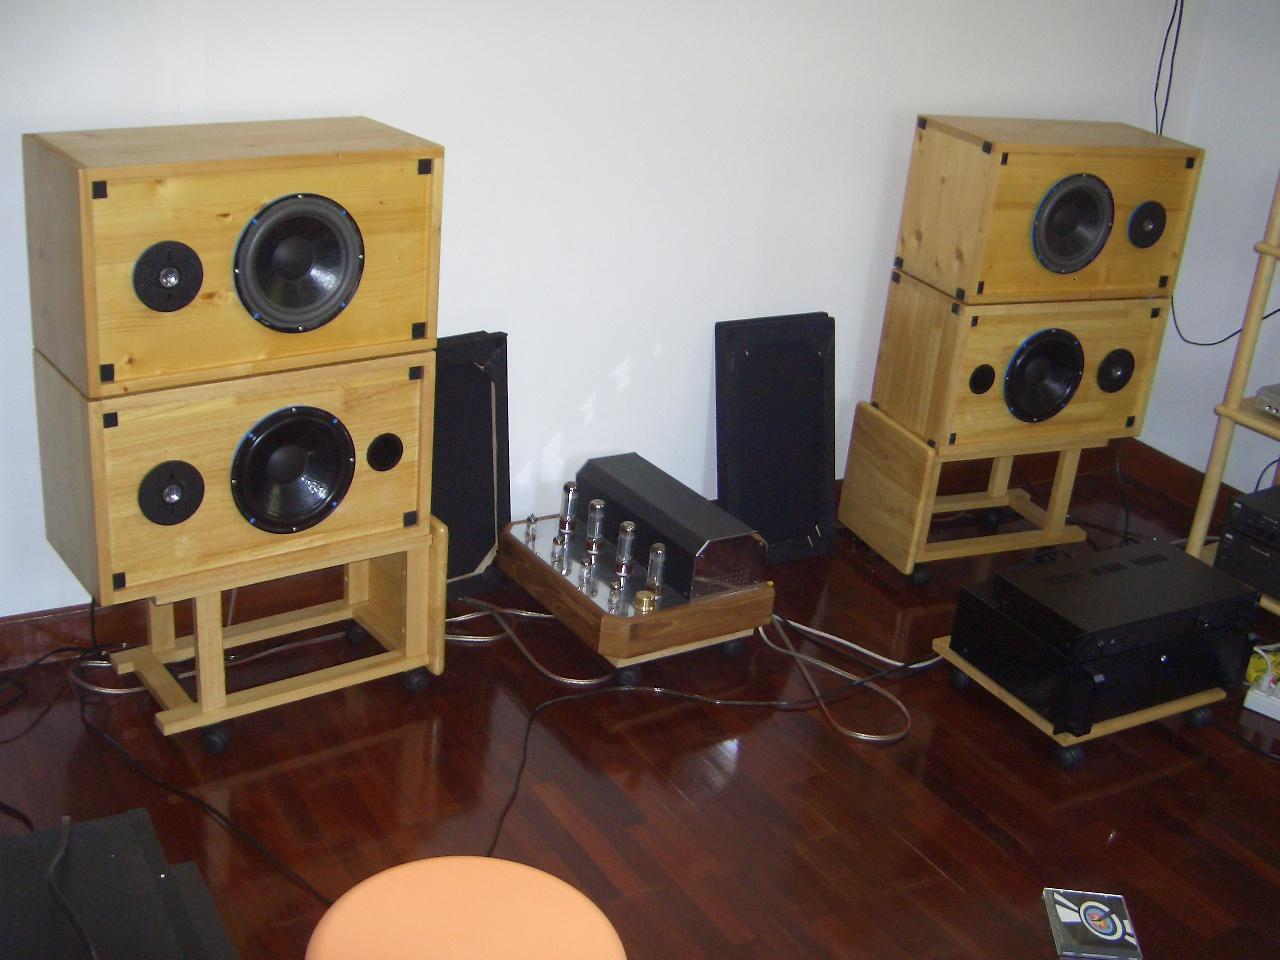 Human speakers do it yourself 81 kit photographs 3 new speakers owner support diy projects epi and epicure genesis physics all other speaker repairs solutioingenieria Choice Image